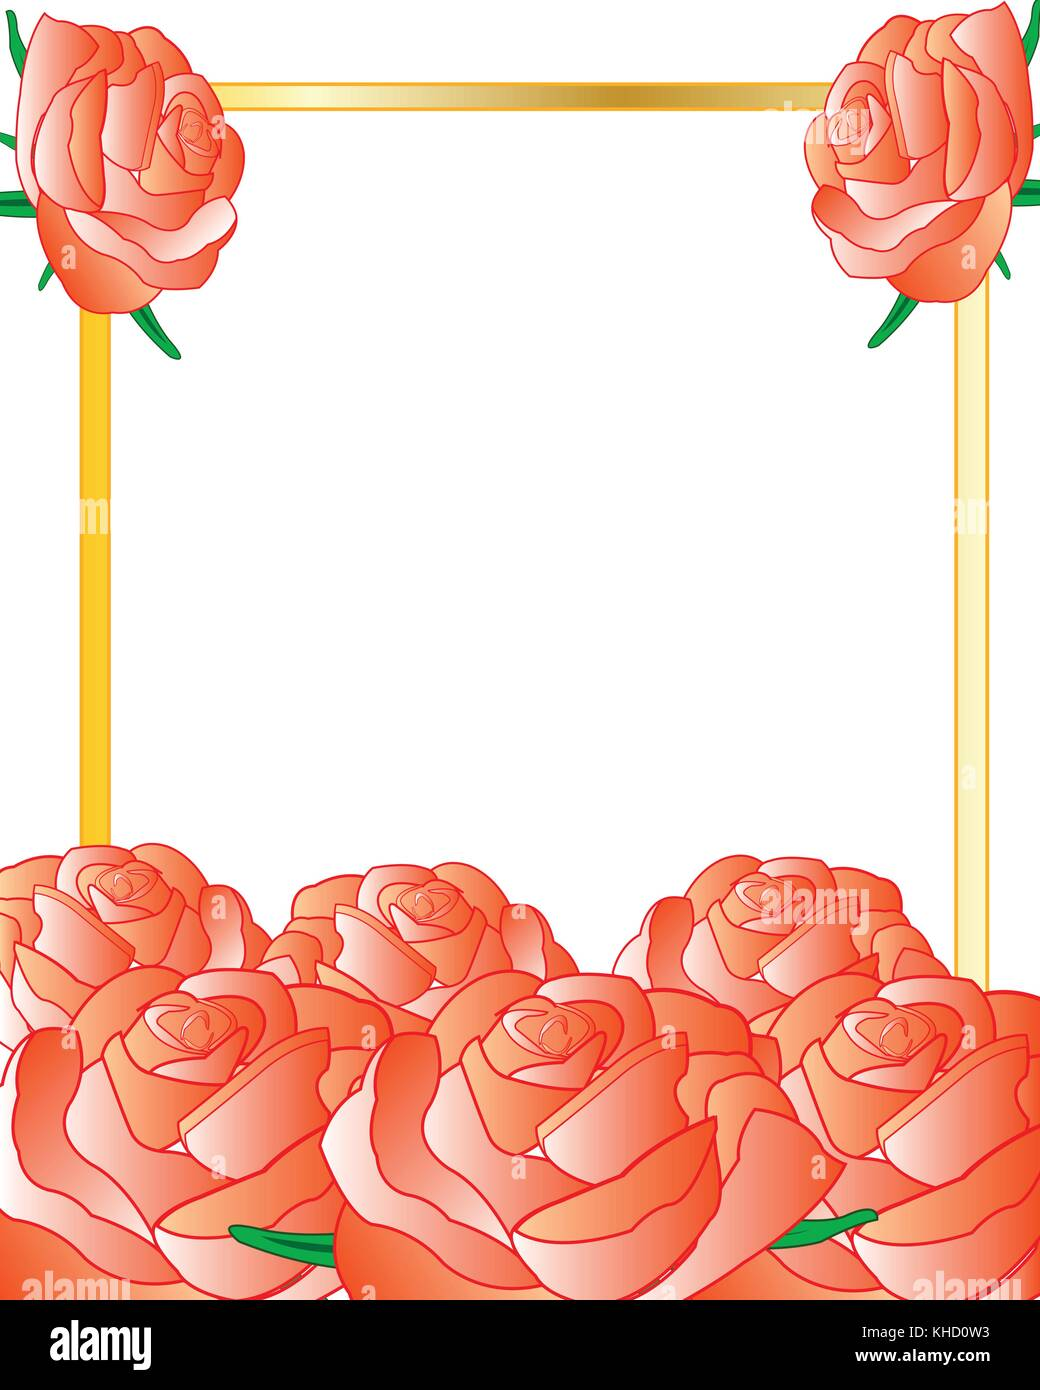 Roses Background Stock Vector Images Alamy Rose Flower Line Diagram Simple Drawing Of Bud Frame Decorated A The